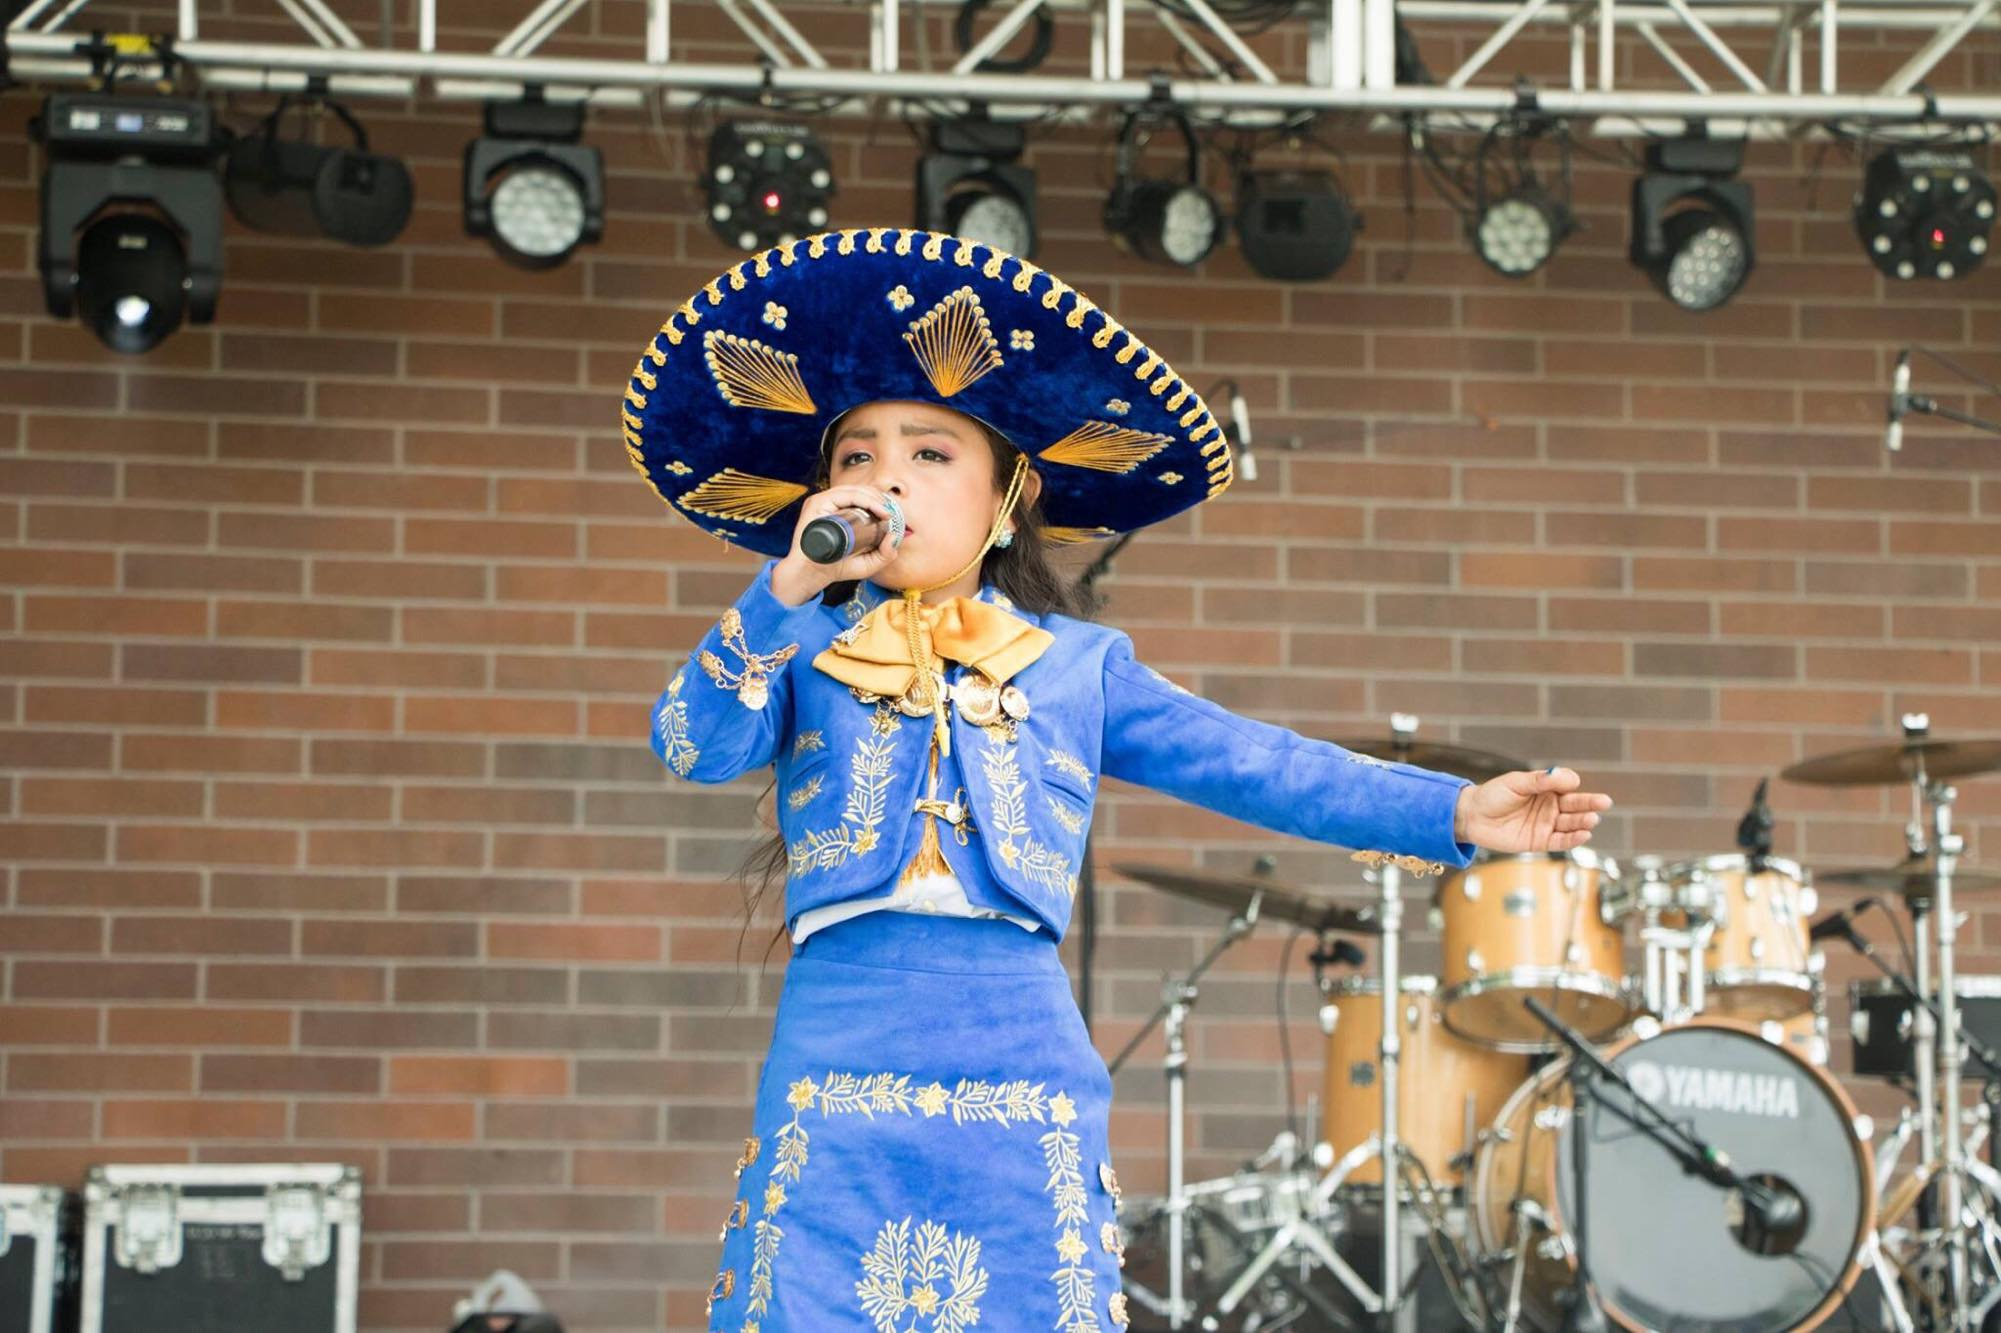 Midvale's Cinco de Mayo to showcase musical talent | Midvale Journal